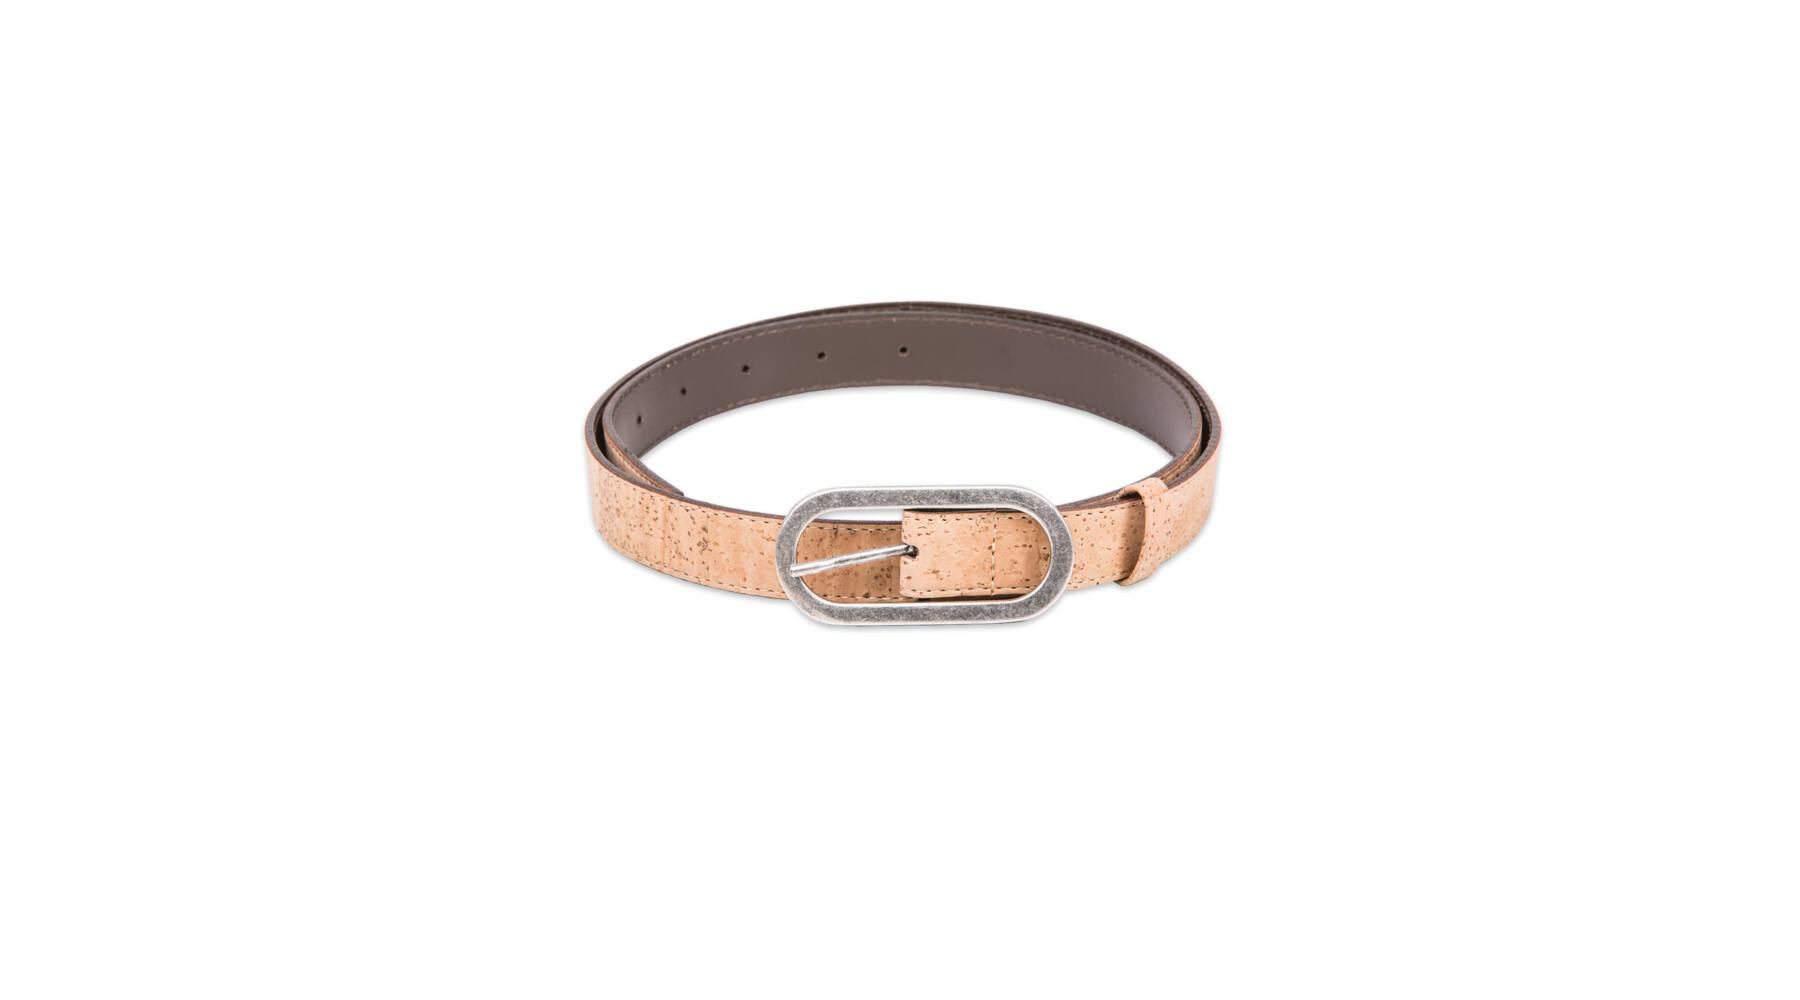 7a087c5f877b5 Woman's belt (25 mm) 120 cm (beige) Click to enlarge